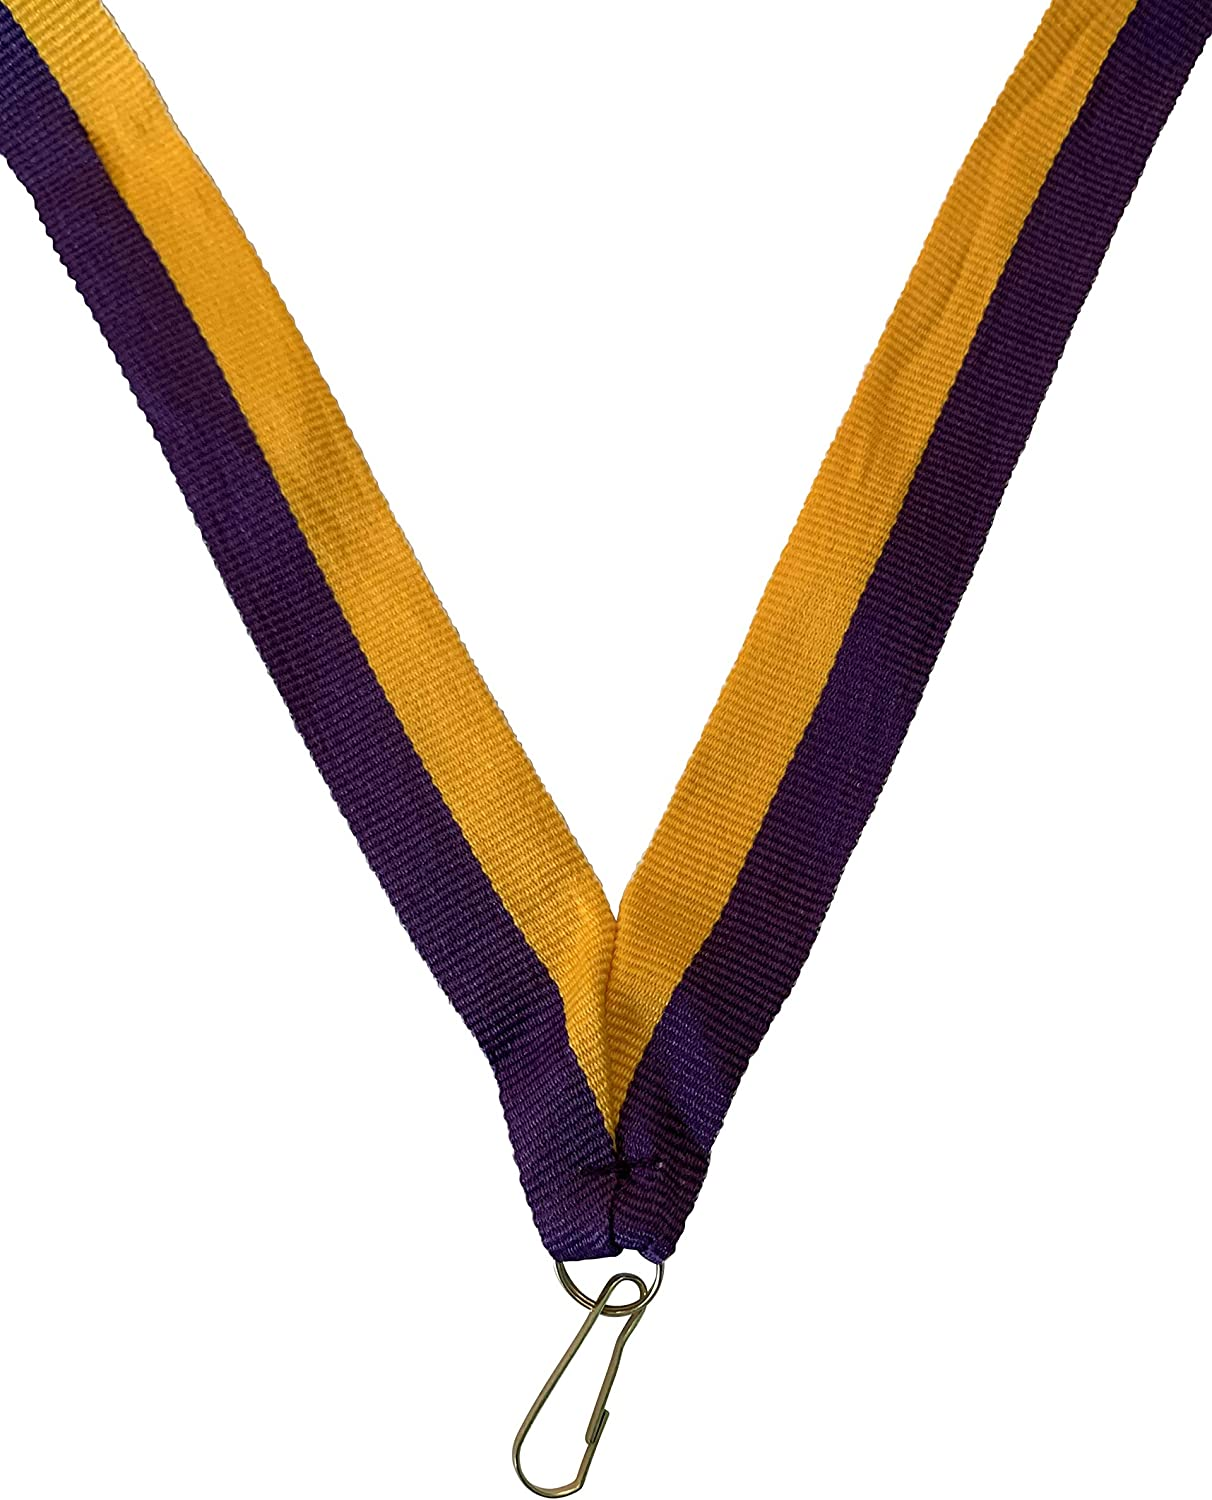 Pack of 10 Purple and Gold Neck Ribbons for Medals with Snap Clips Flat Lanyard Award